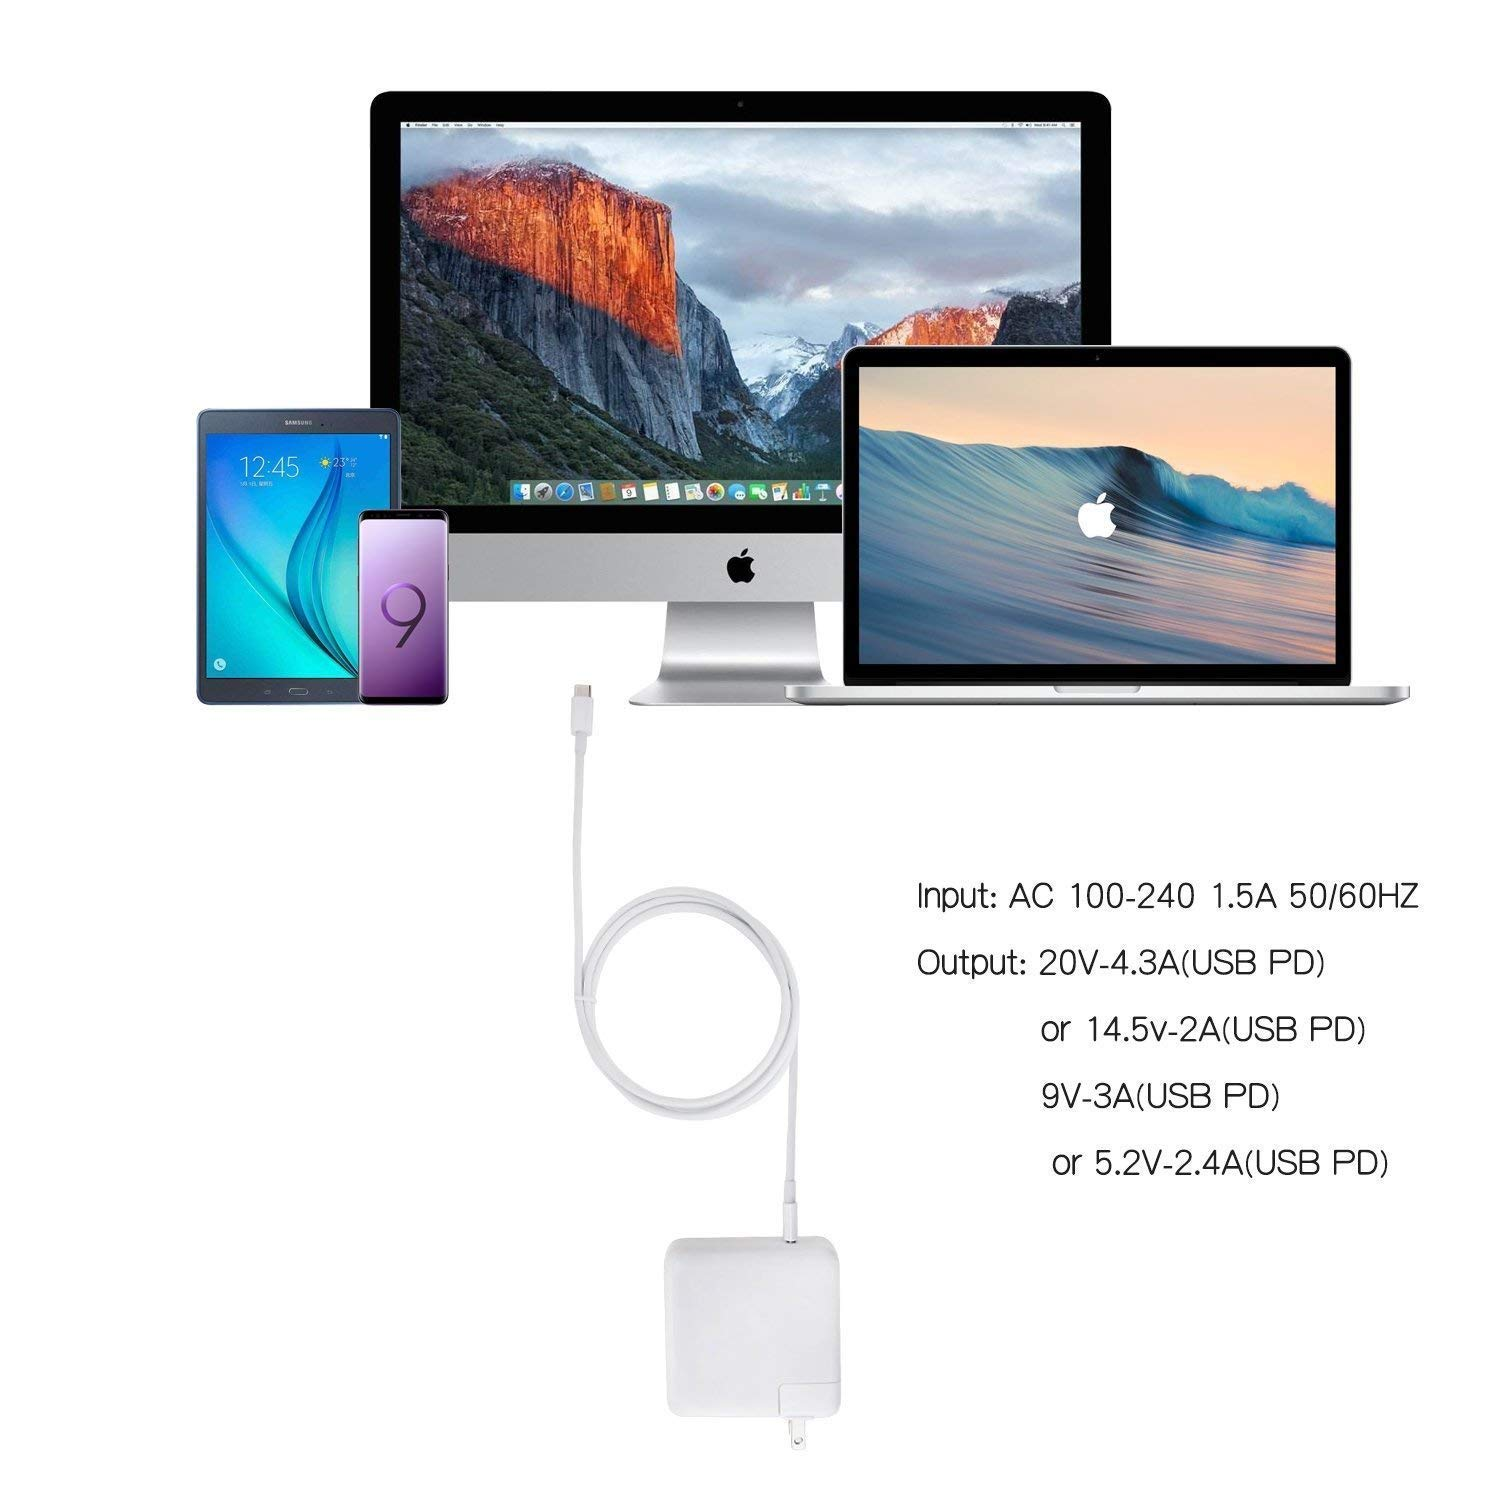 GSNOW 87W USB-C Power Adapter Charger - Compatible with MacBook Pro 15 Inch Laptop - with USB-C to USB-C Charge Cable (White) by GSNOW (Image #6)